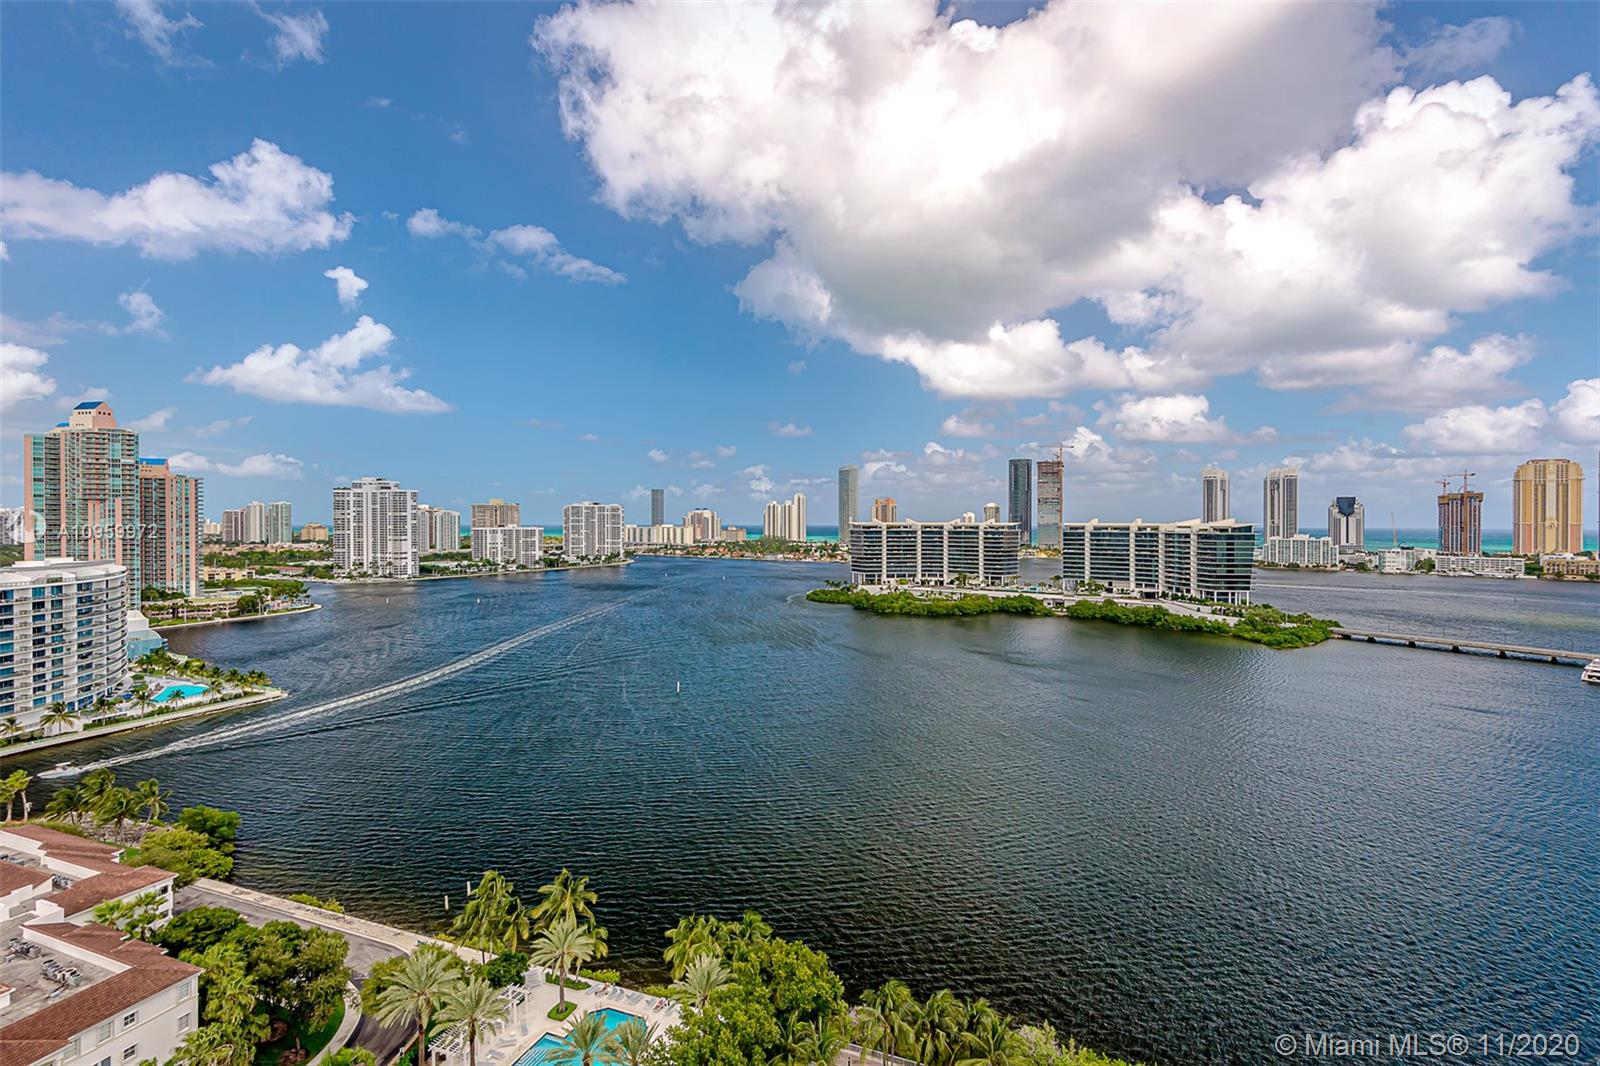 IMACULATE, PROFESSIONALLY DECORATED, TURN KEY UNIT!! AMAZING VIEWS!! SPA/FITNESS CENTER/TENNIS COURTS/24 HR SECURITY/BBQ AREA/STORAGE ROOM/PET FRIENDLY COMMUNITY/ /CHILDRENS PAYGROUND/PET'S PLAYGROUND/ PRIME LOCATION!! CLOSE TO AVENTURA MALL/ WALKING DISTANCE TO SUPERMARKET/SCHOOLS/WORSHIP HOUSE/WALLGREENS/BANKS/STARBUCKS CAFFEE/BEAUTY SALON